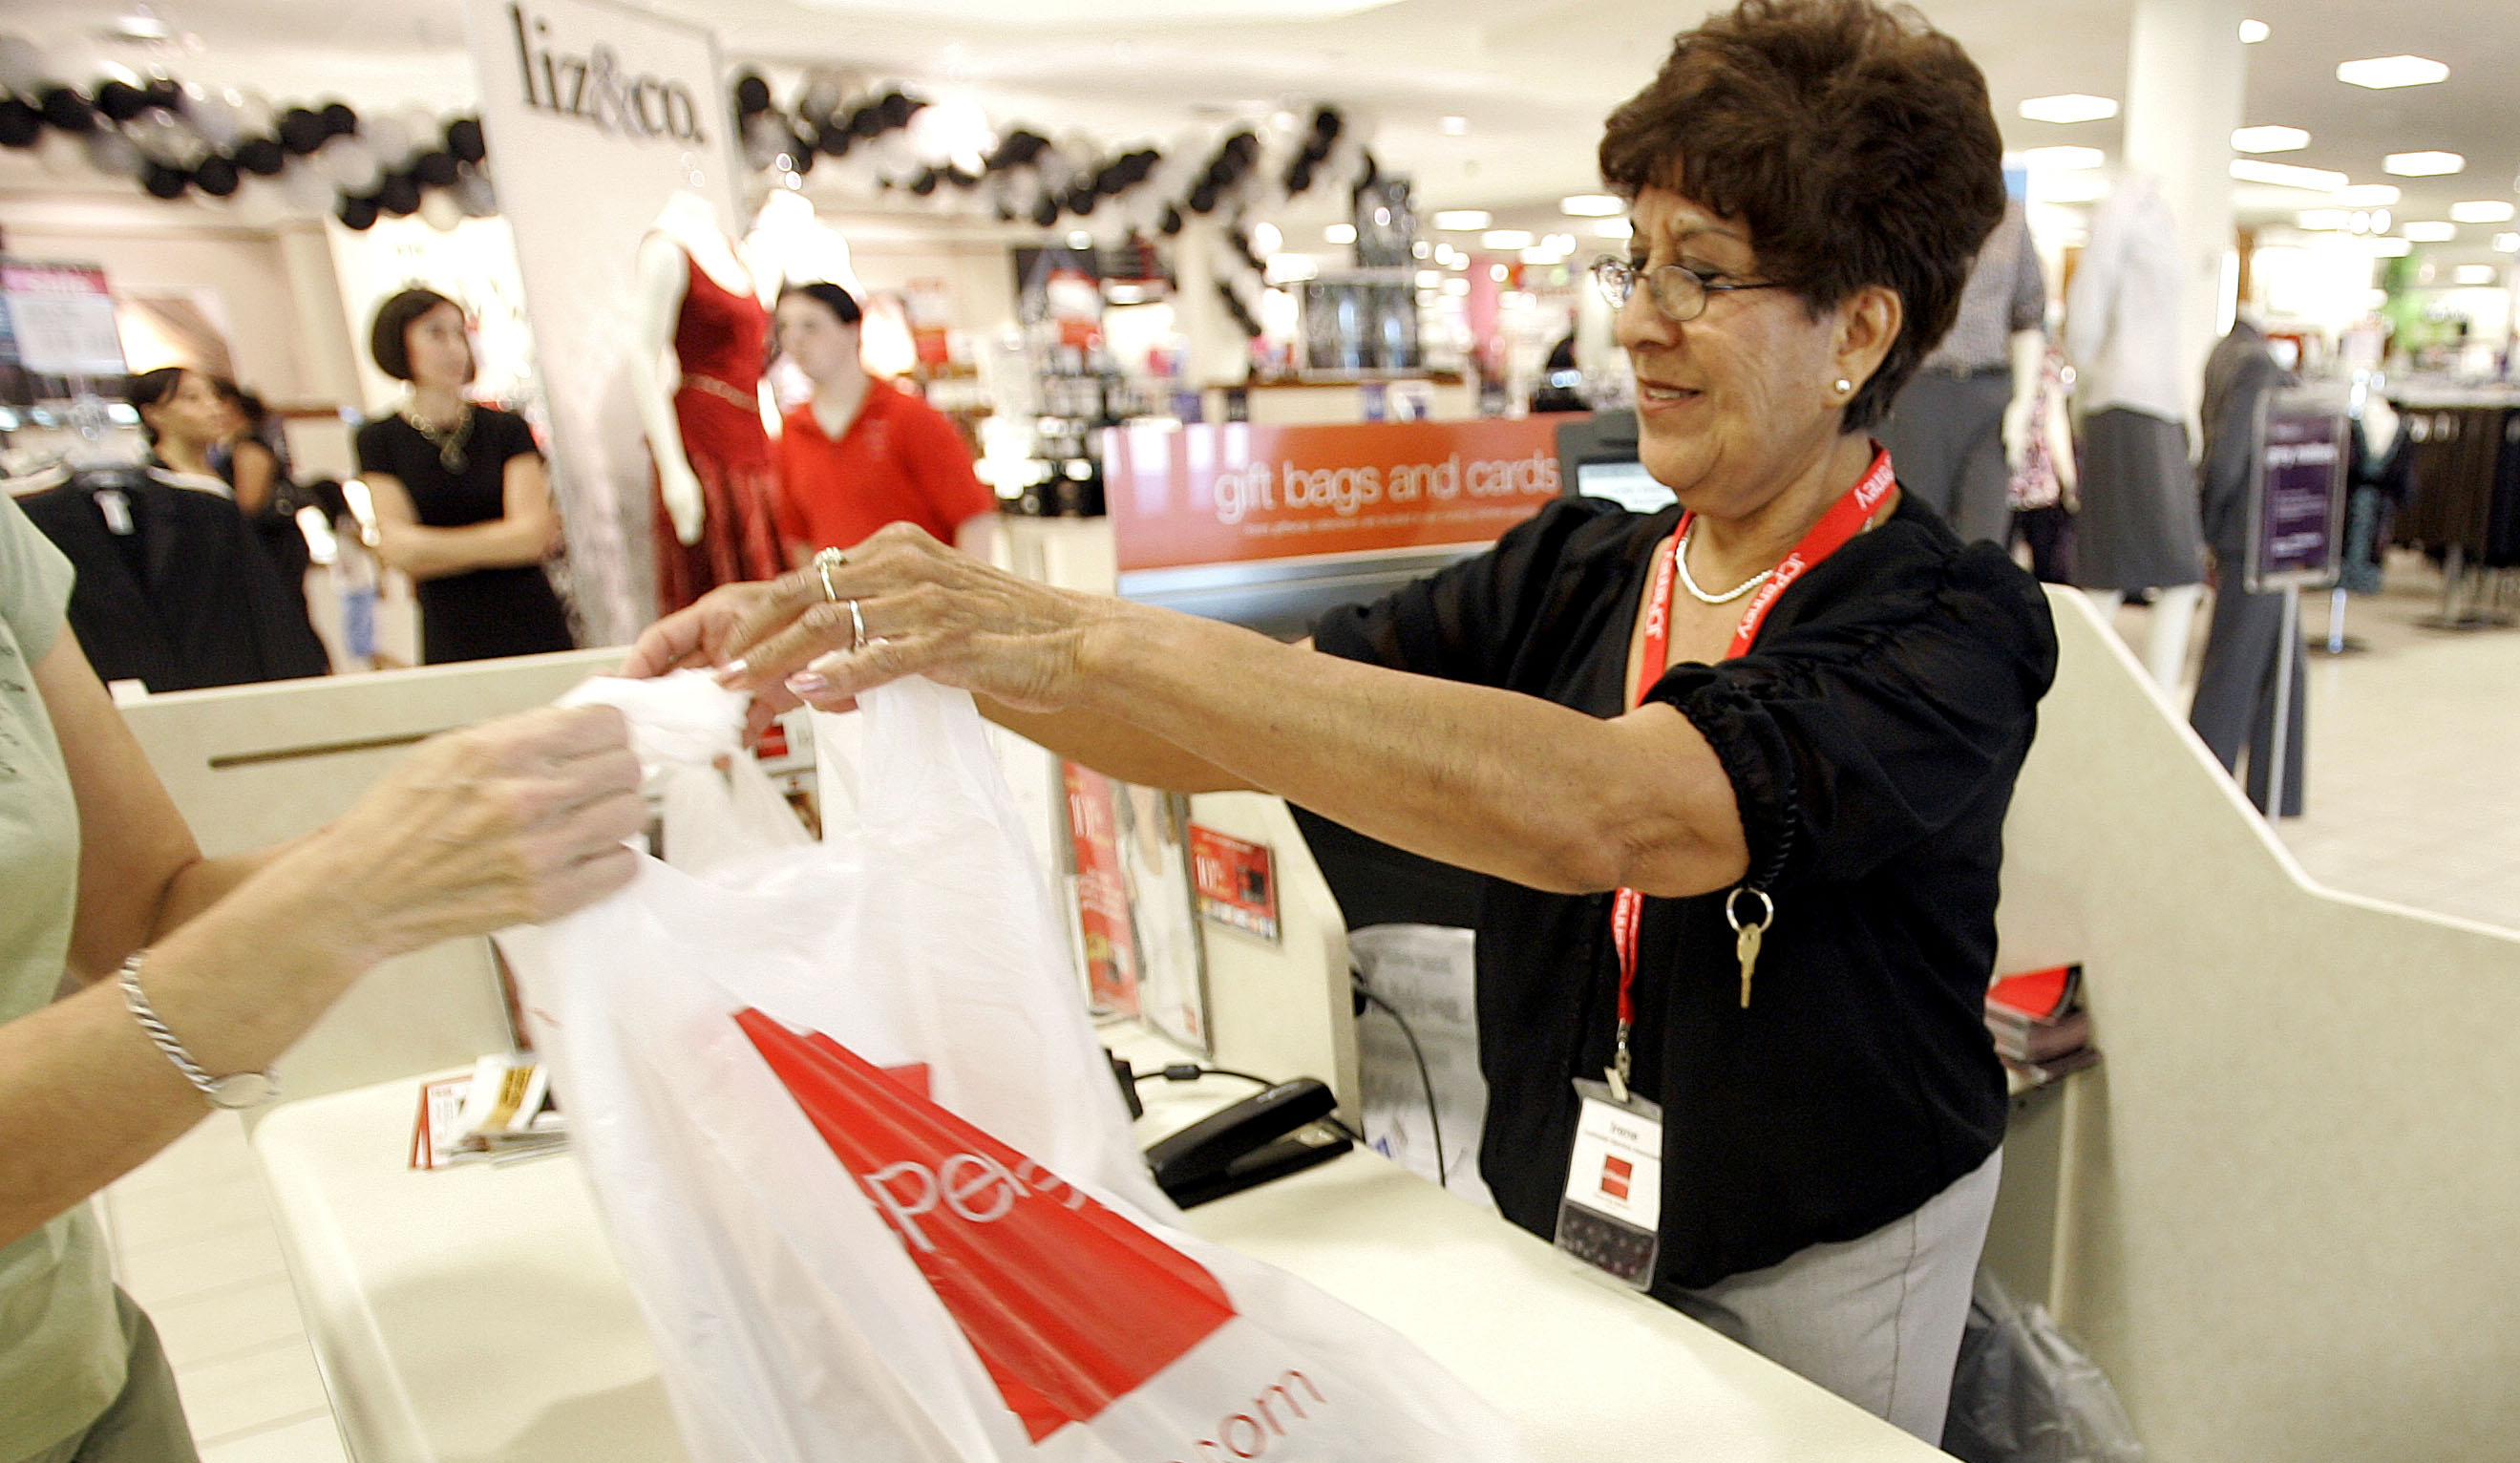 Cashier Irene Peters checks out a customer at a department store in Phoenix.